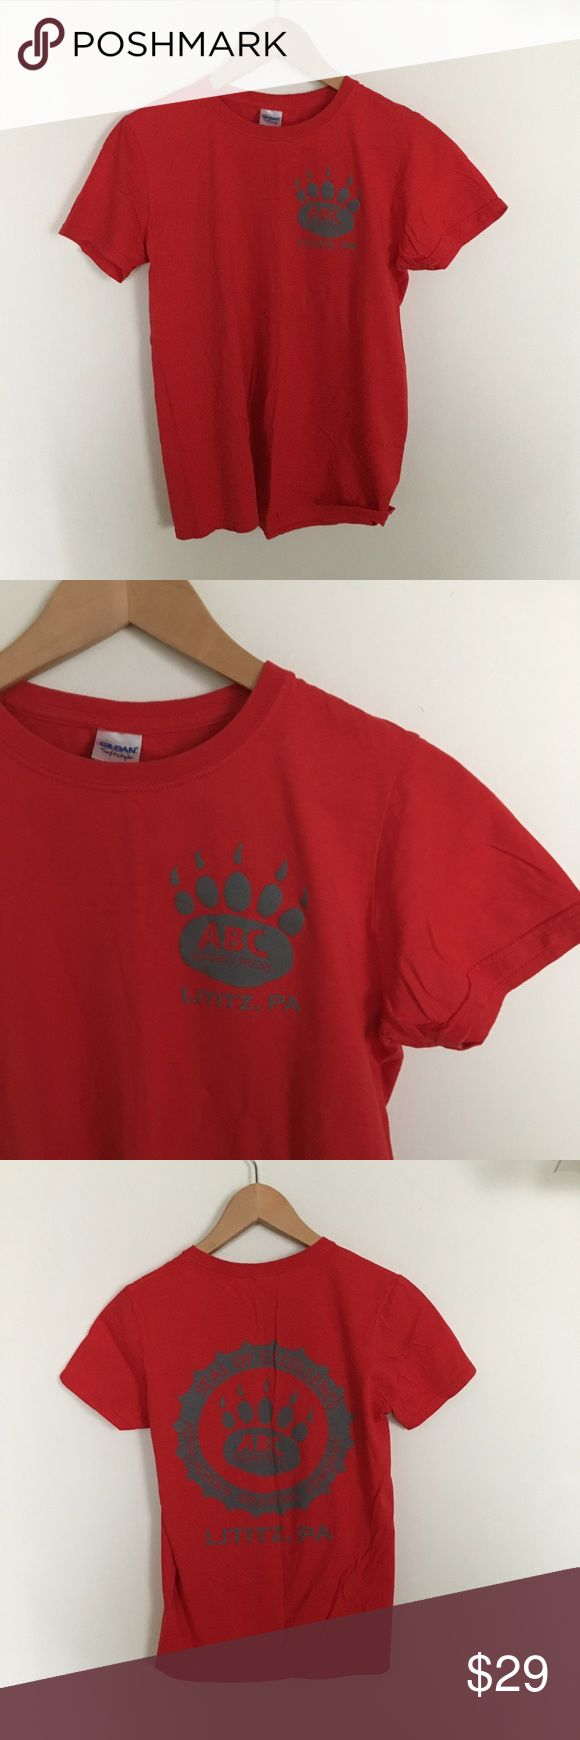 Vintage Brewing Tee Vintage Gildan Softstyle Tee. Adult size small. Bright crisp red with gray Appalachian Brewing Company Seal of Excellence Paw screen print. Tops Tees - Short Sleeve